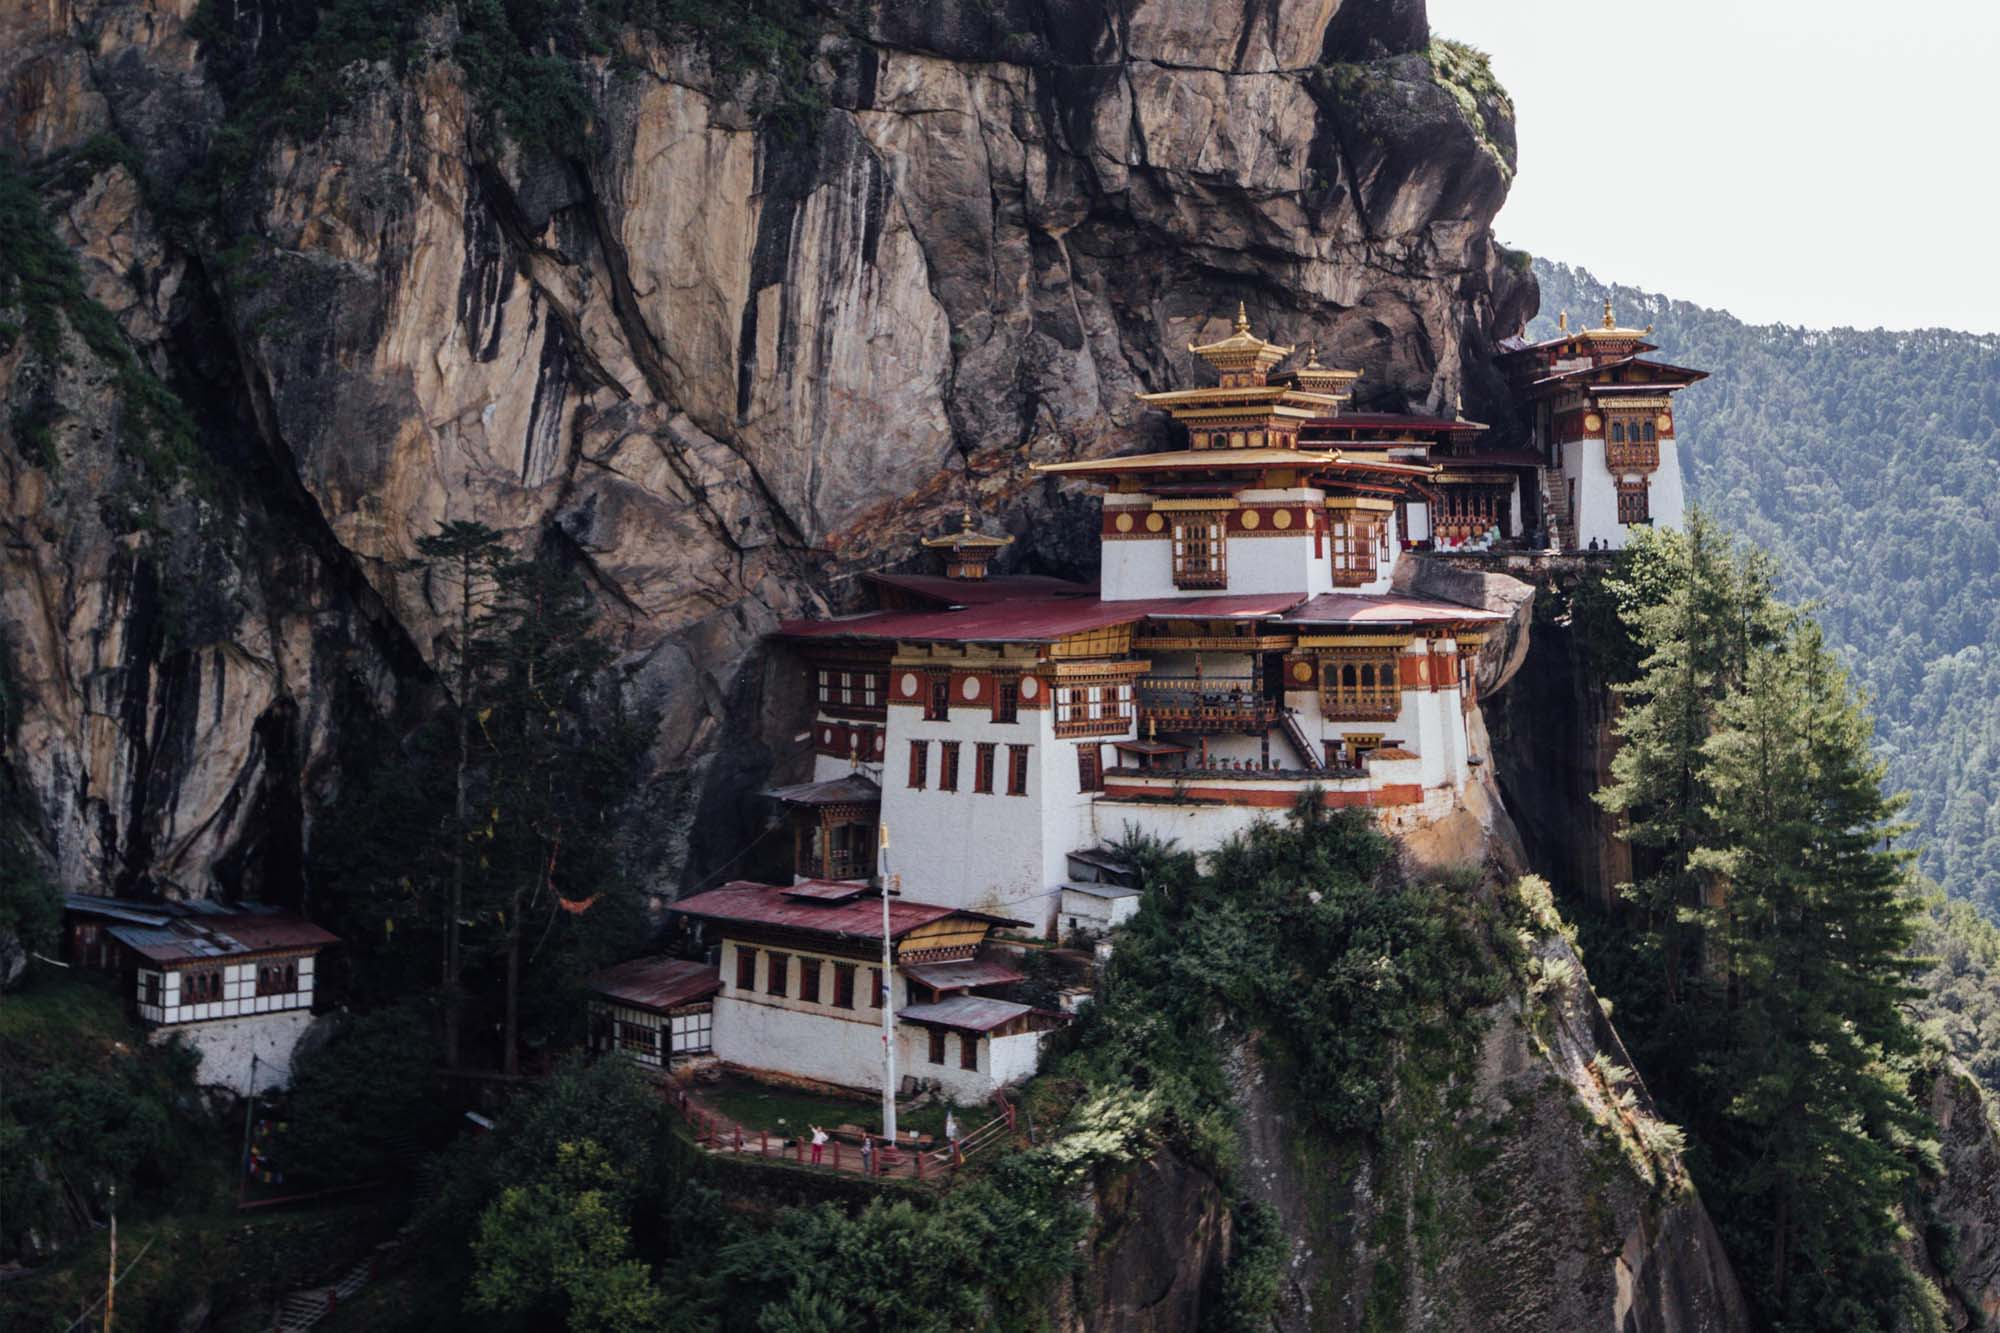 Postcards from Bhutan